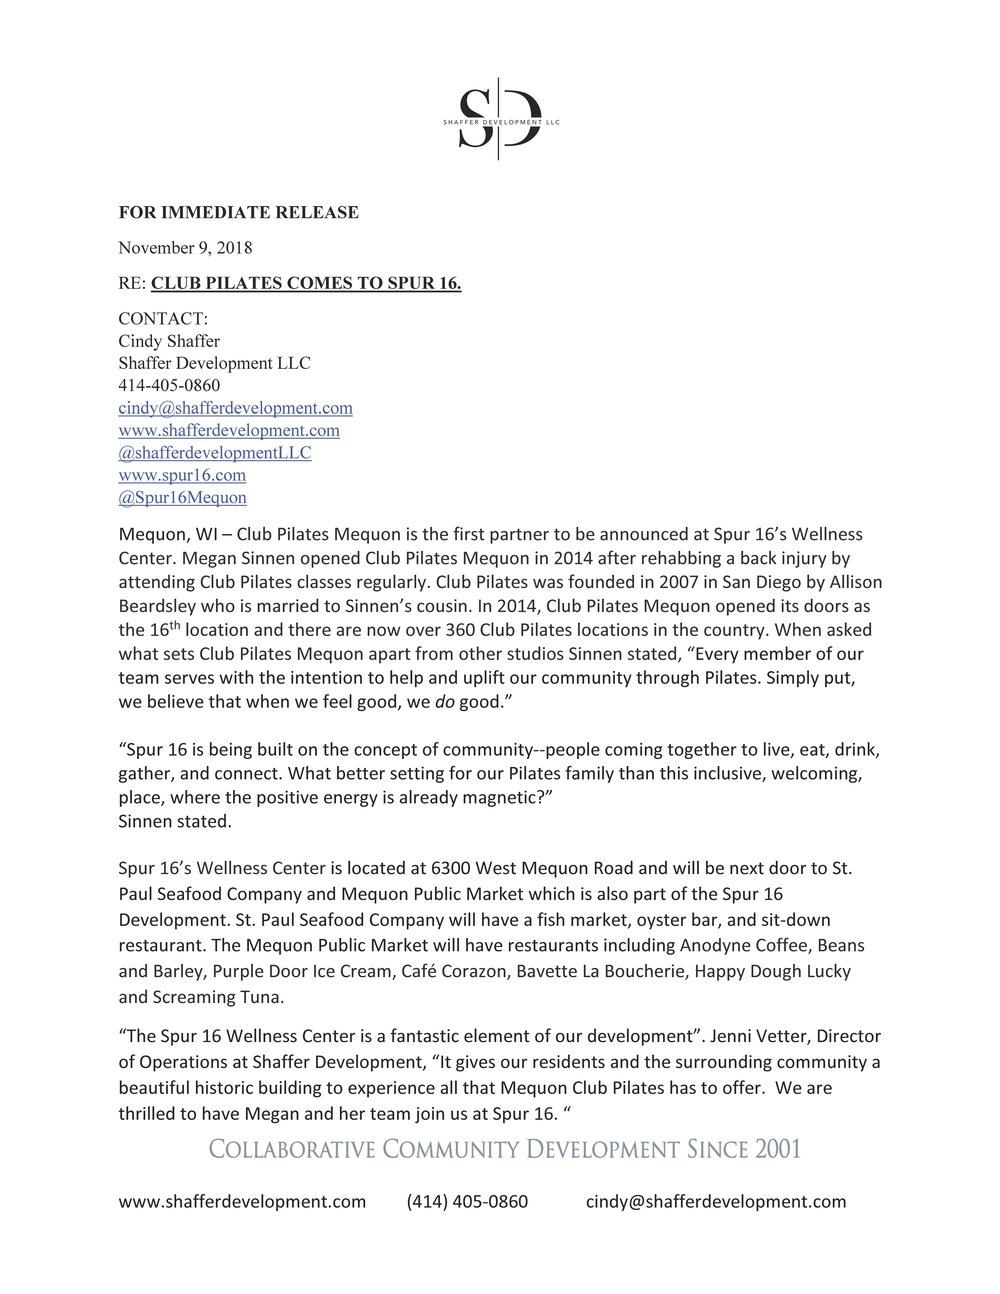 Club Pilates Mequon Spur 16 Press Release_Page_1.jpg